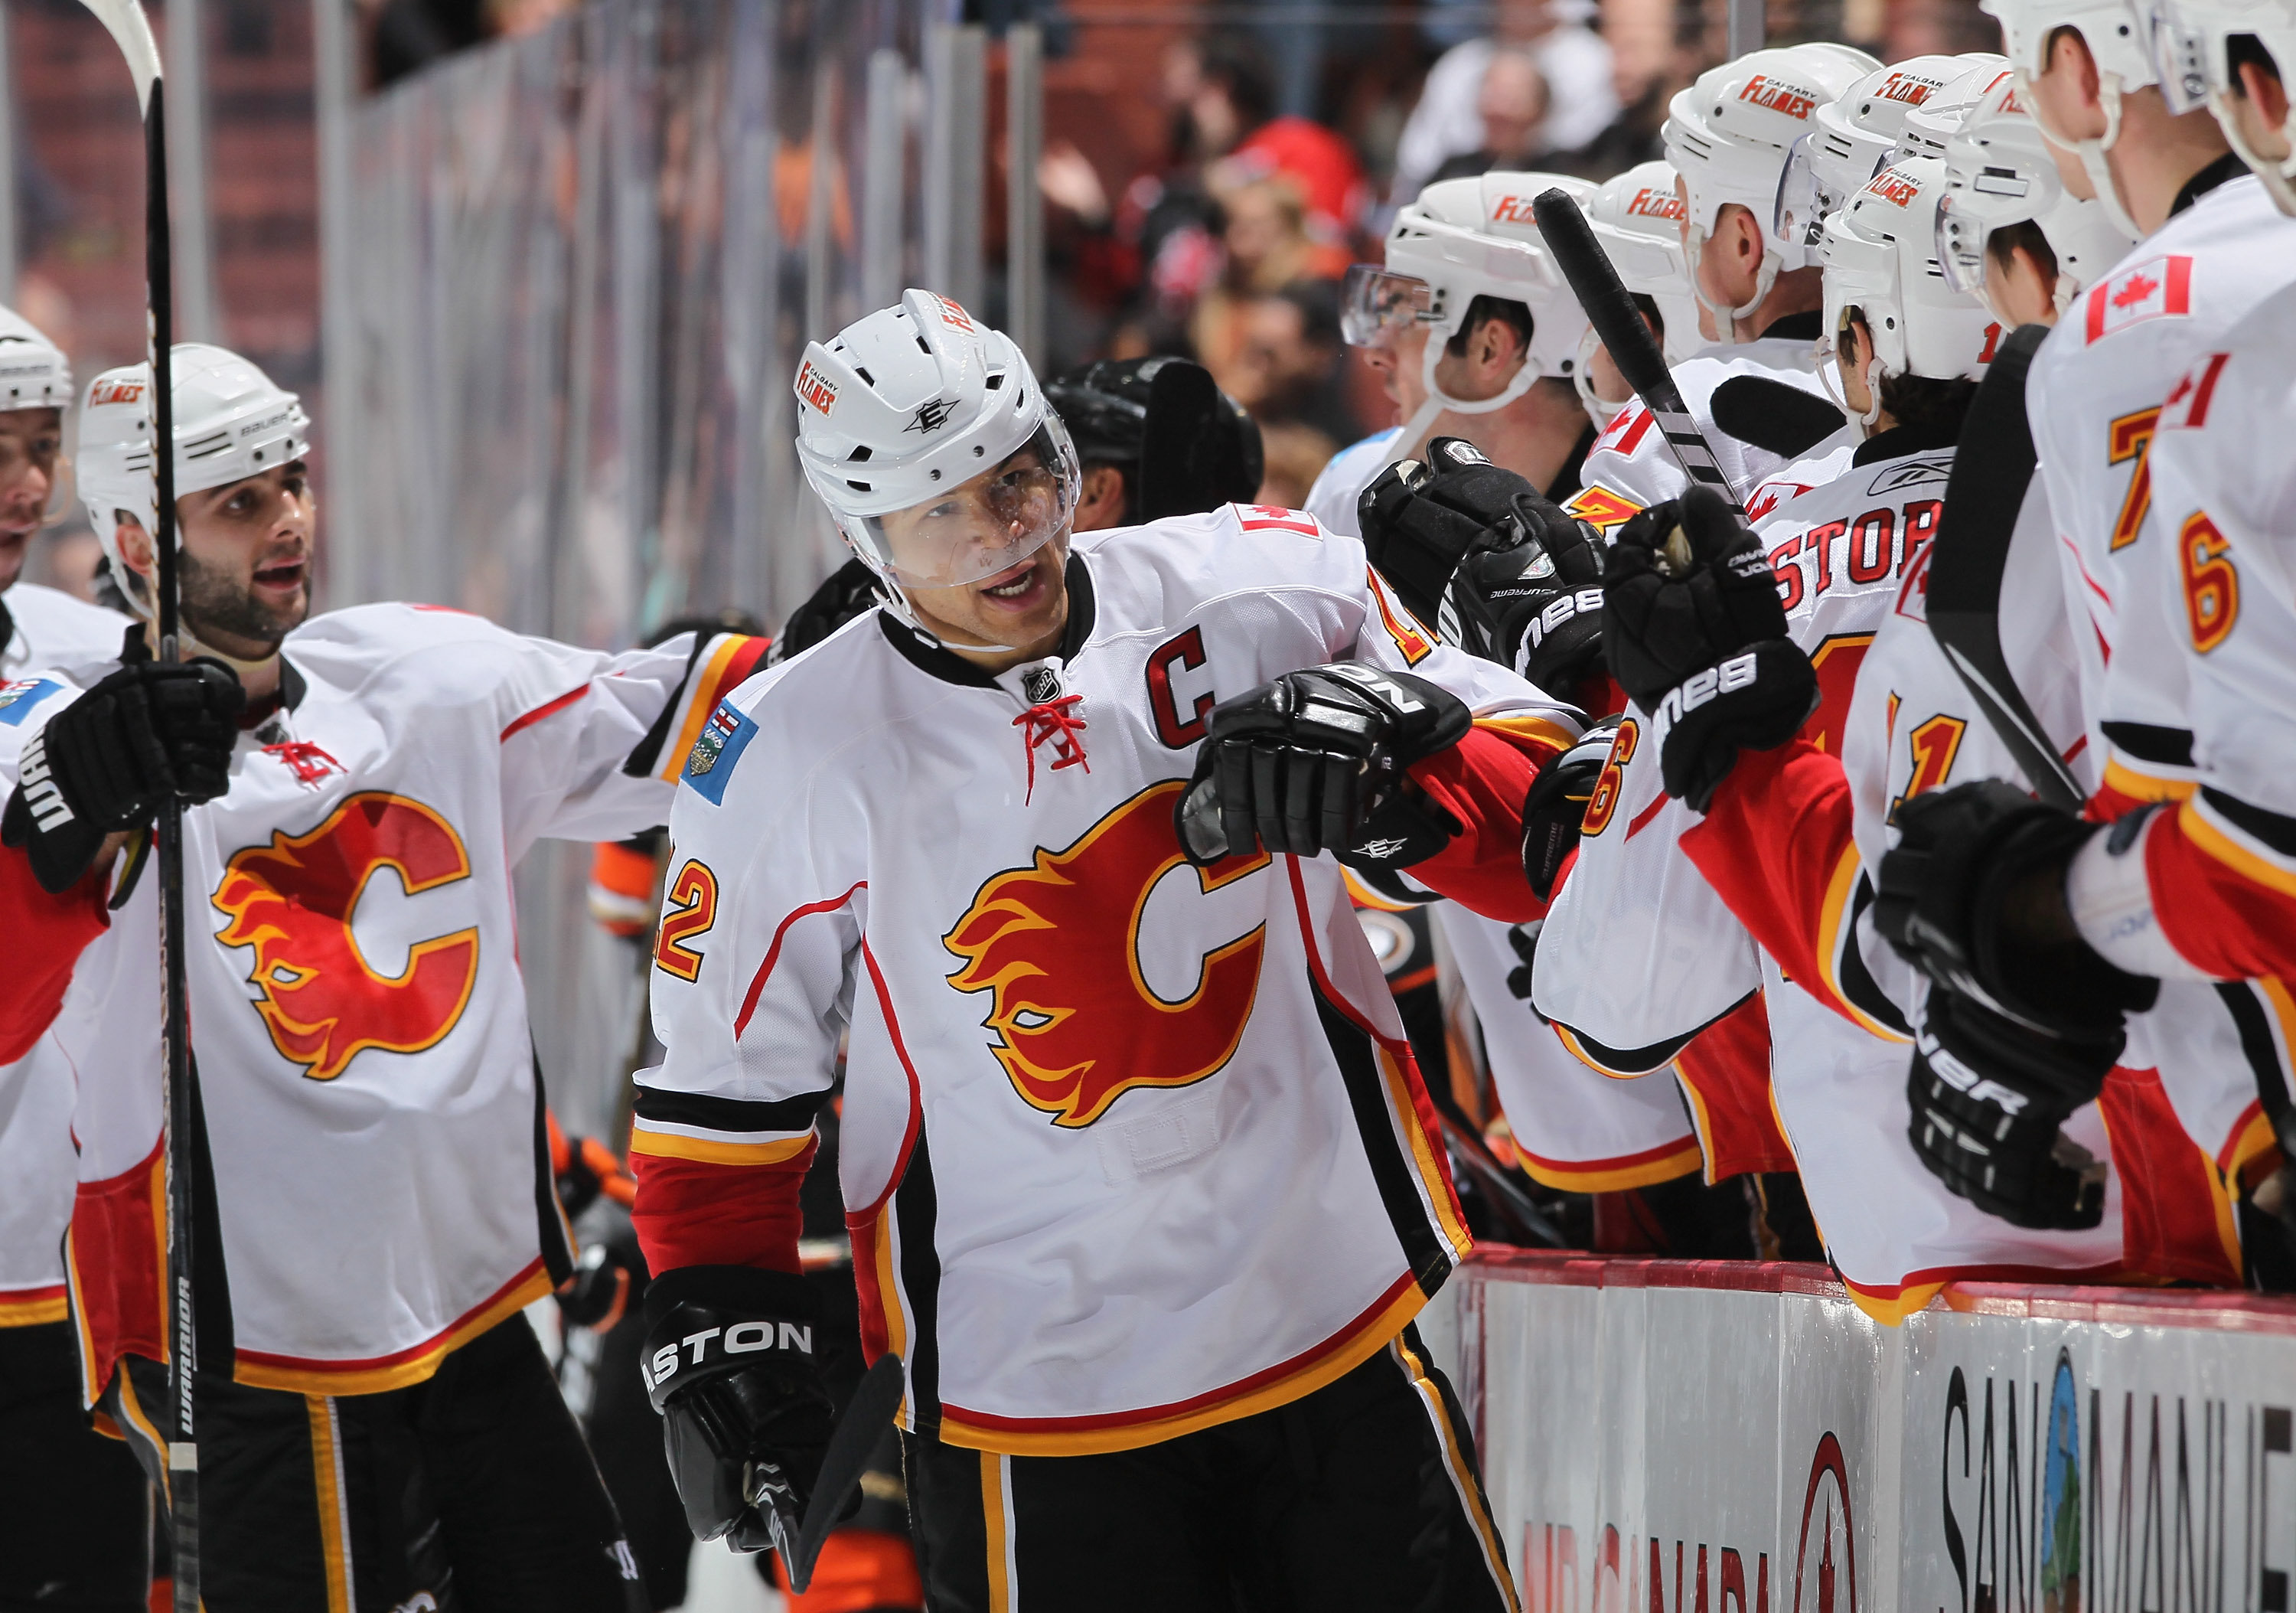 ANAHEIM, CA - DECEMBER 10:  Jerome Iginla #12 of the Calgary Flames receives high fives from the bench after scoring a goal against the Anaheim Ducks in the third period at the Honda Center on December 10, 2010 in Anaheim, California. The Ducks defeated t